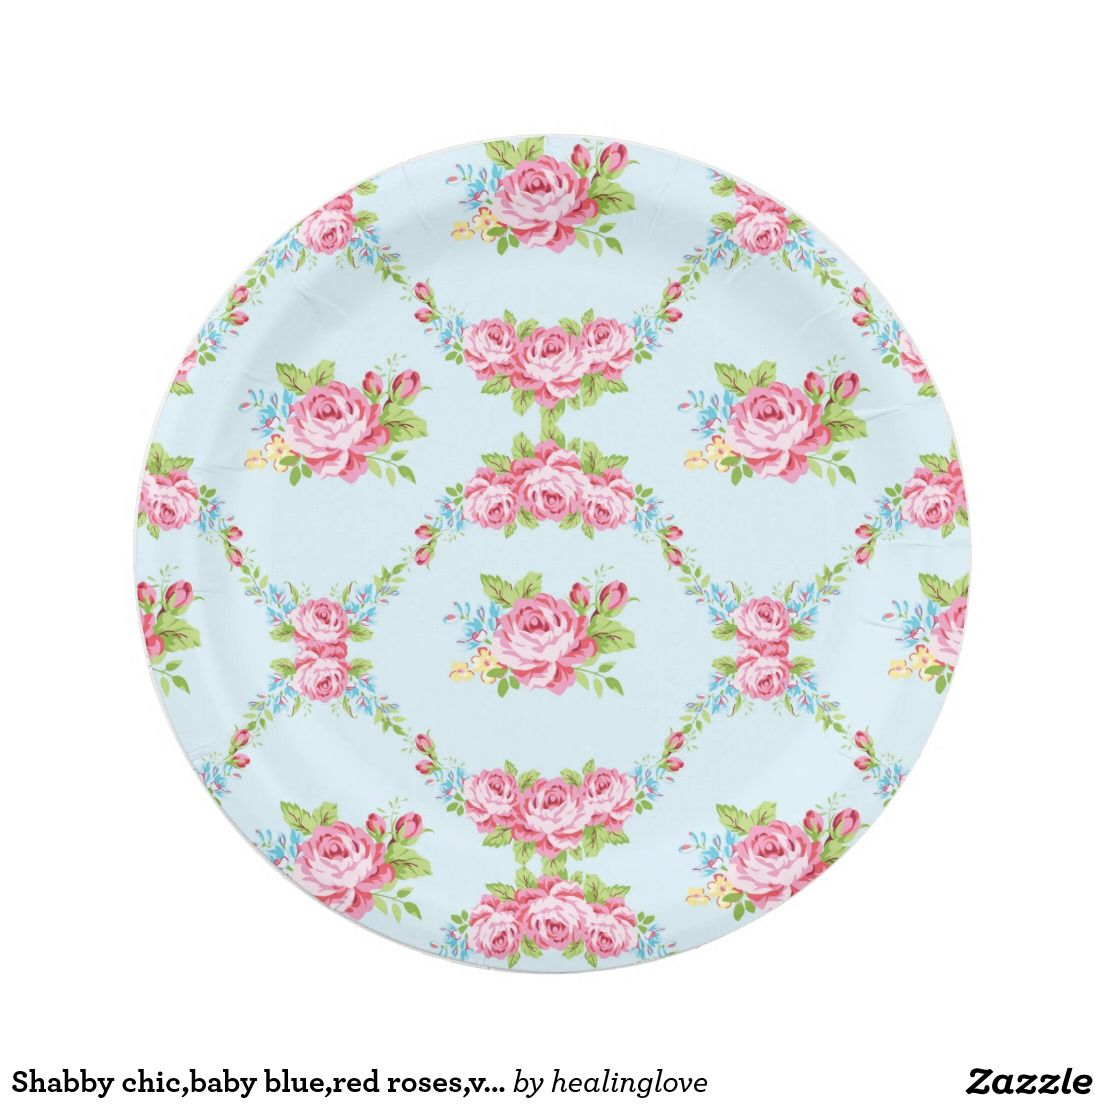 Shabby chicbaby bluered rosesvictorianfloralp paper plate. Shabby Chic Baby Blue Red Roses Victorian Floral P Paper Plate  sc 1 st  Best Image Engine & Exciting Victorian Paper Plates Contemporary - Best Image Engine ...